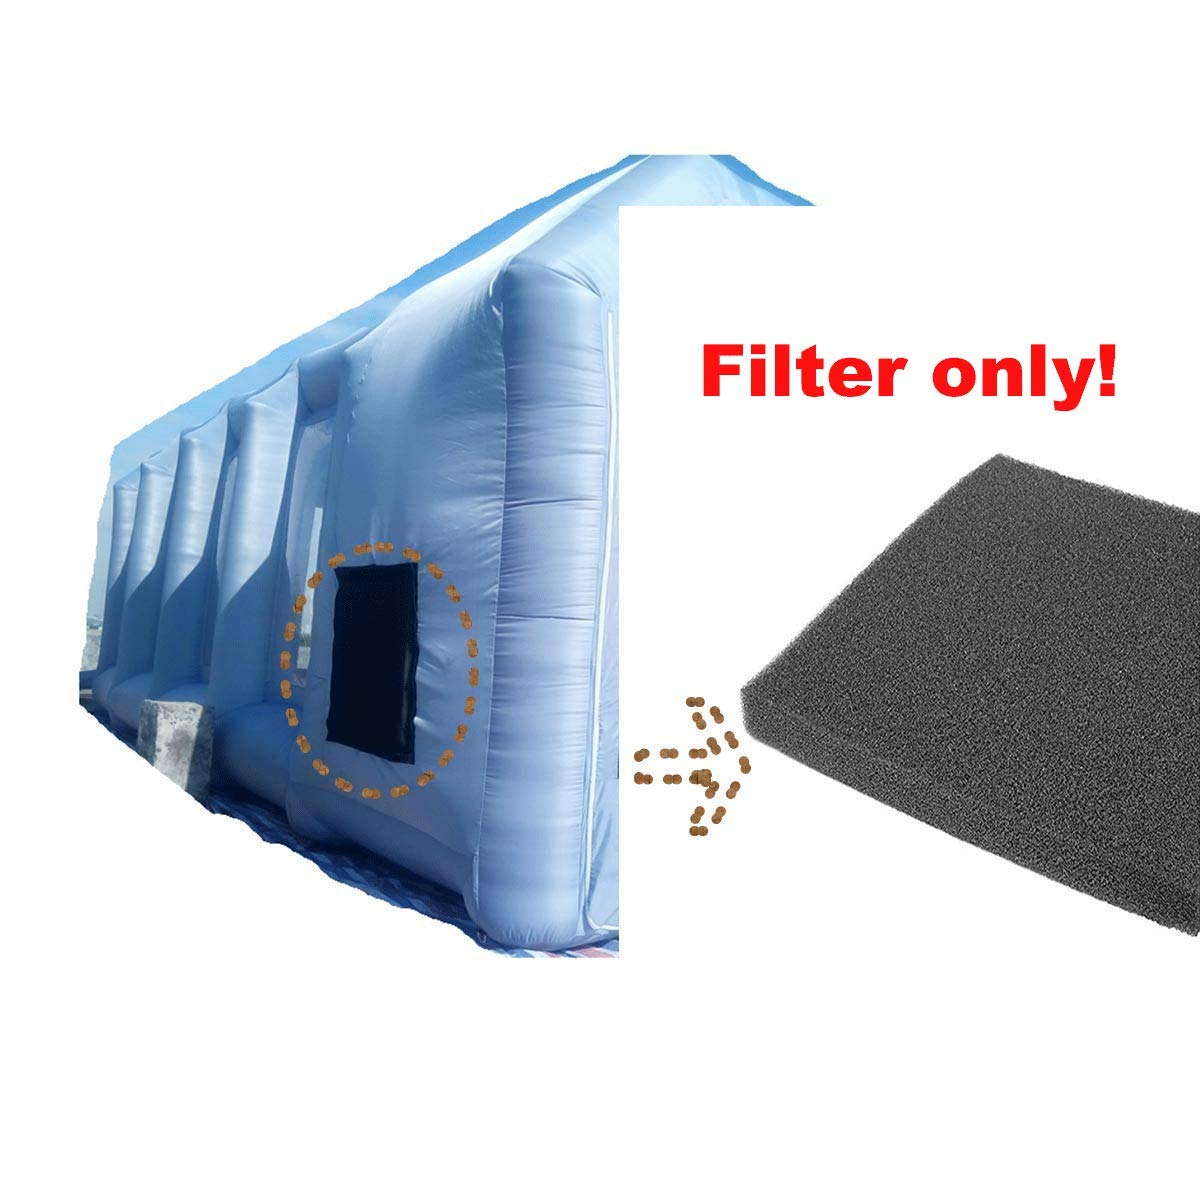 Inflatable Spray Booth with Filter System Portable Car Paint Booth for Car Parking Tent Workstation (Blue, 65655CM) by LIVIQILY